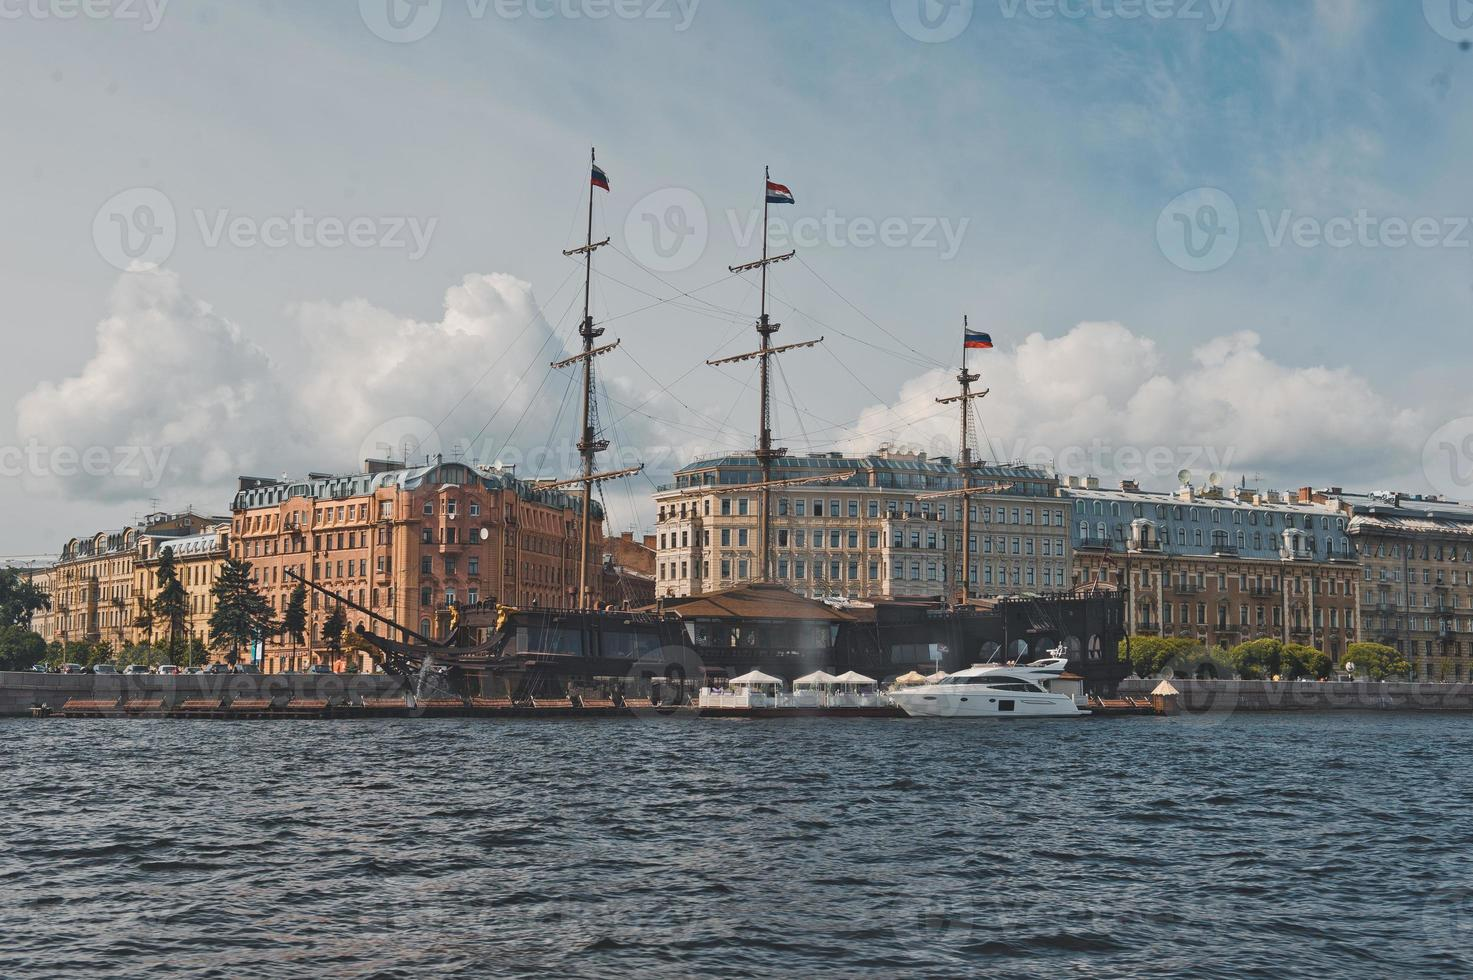 City of St. Petersburg, view from the motor ship 1131. photo